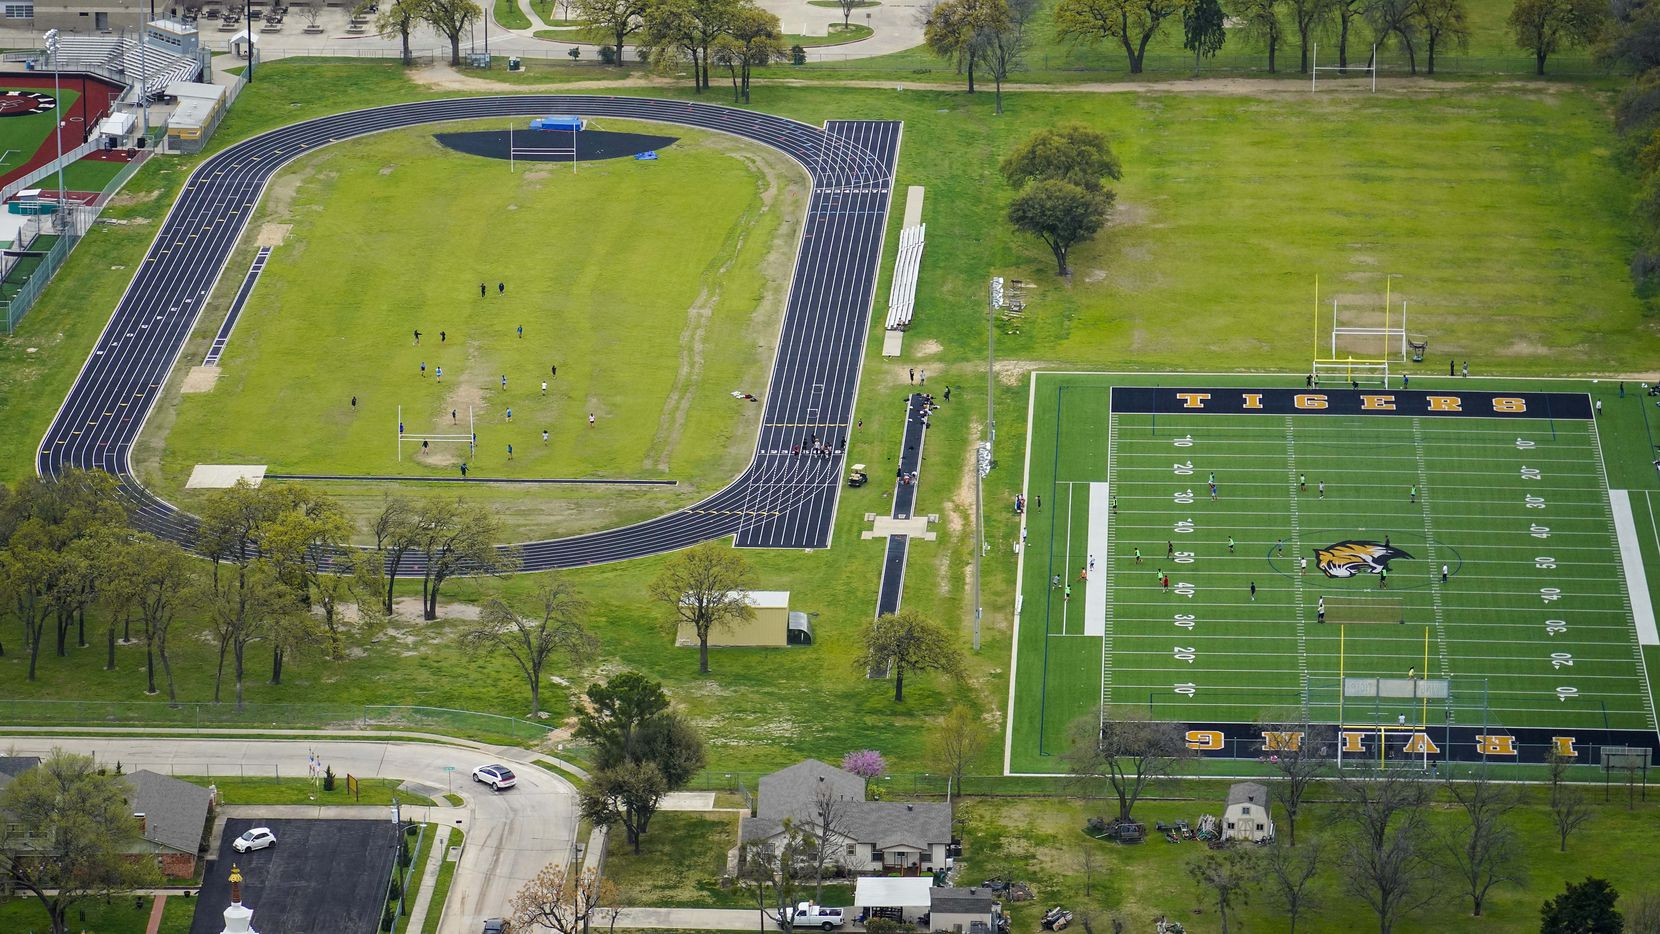 Aerial view of athletic fields at Irving High School.